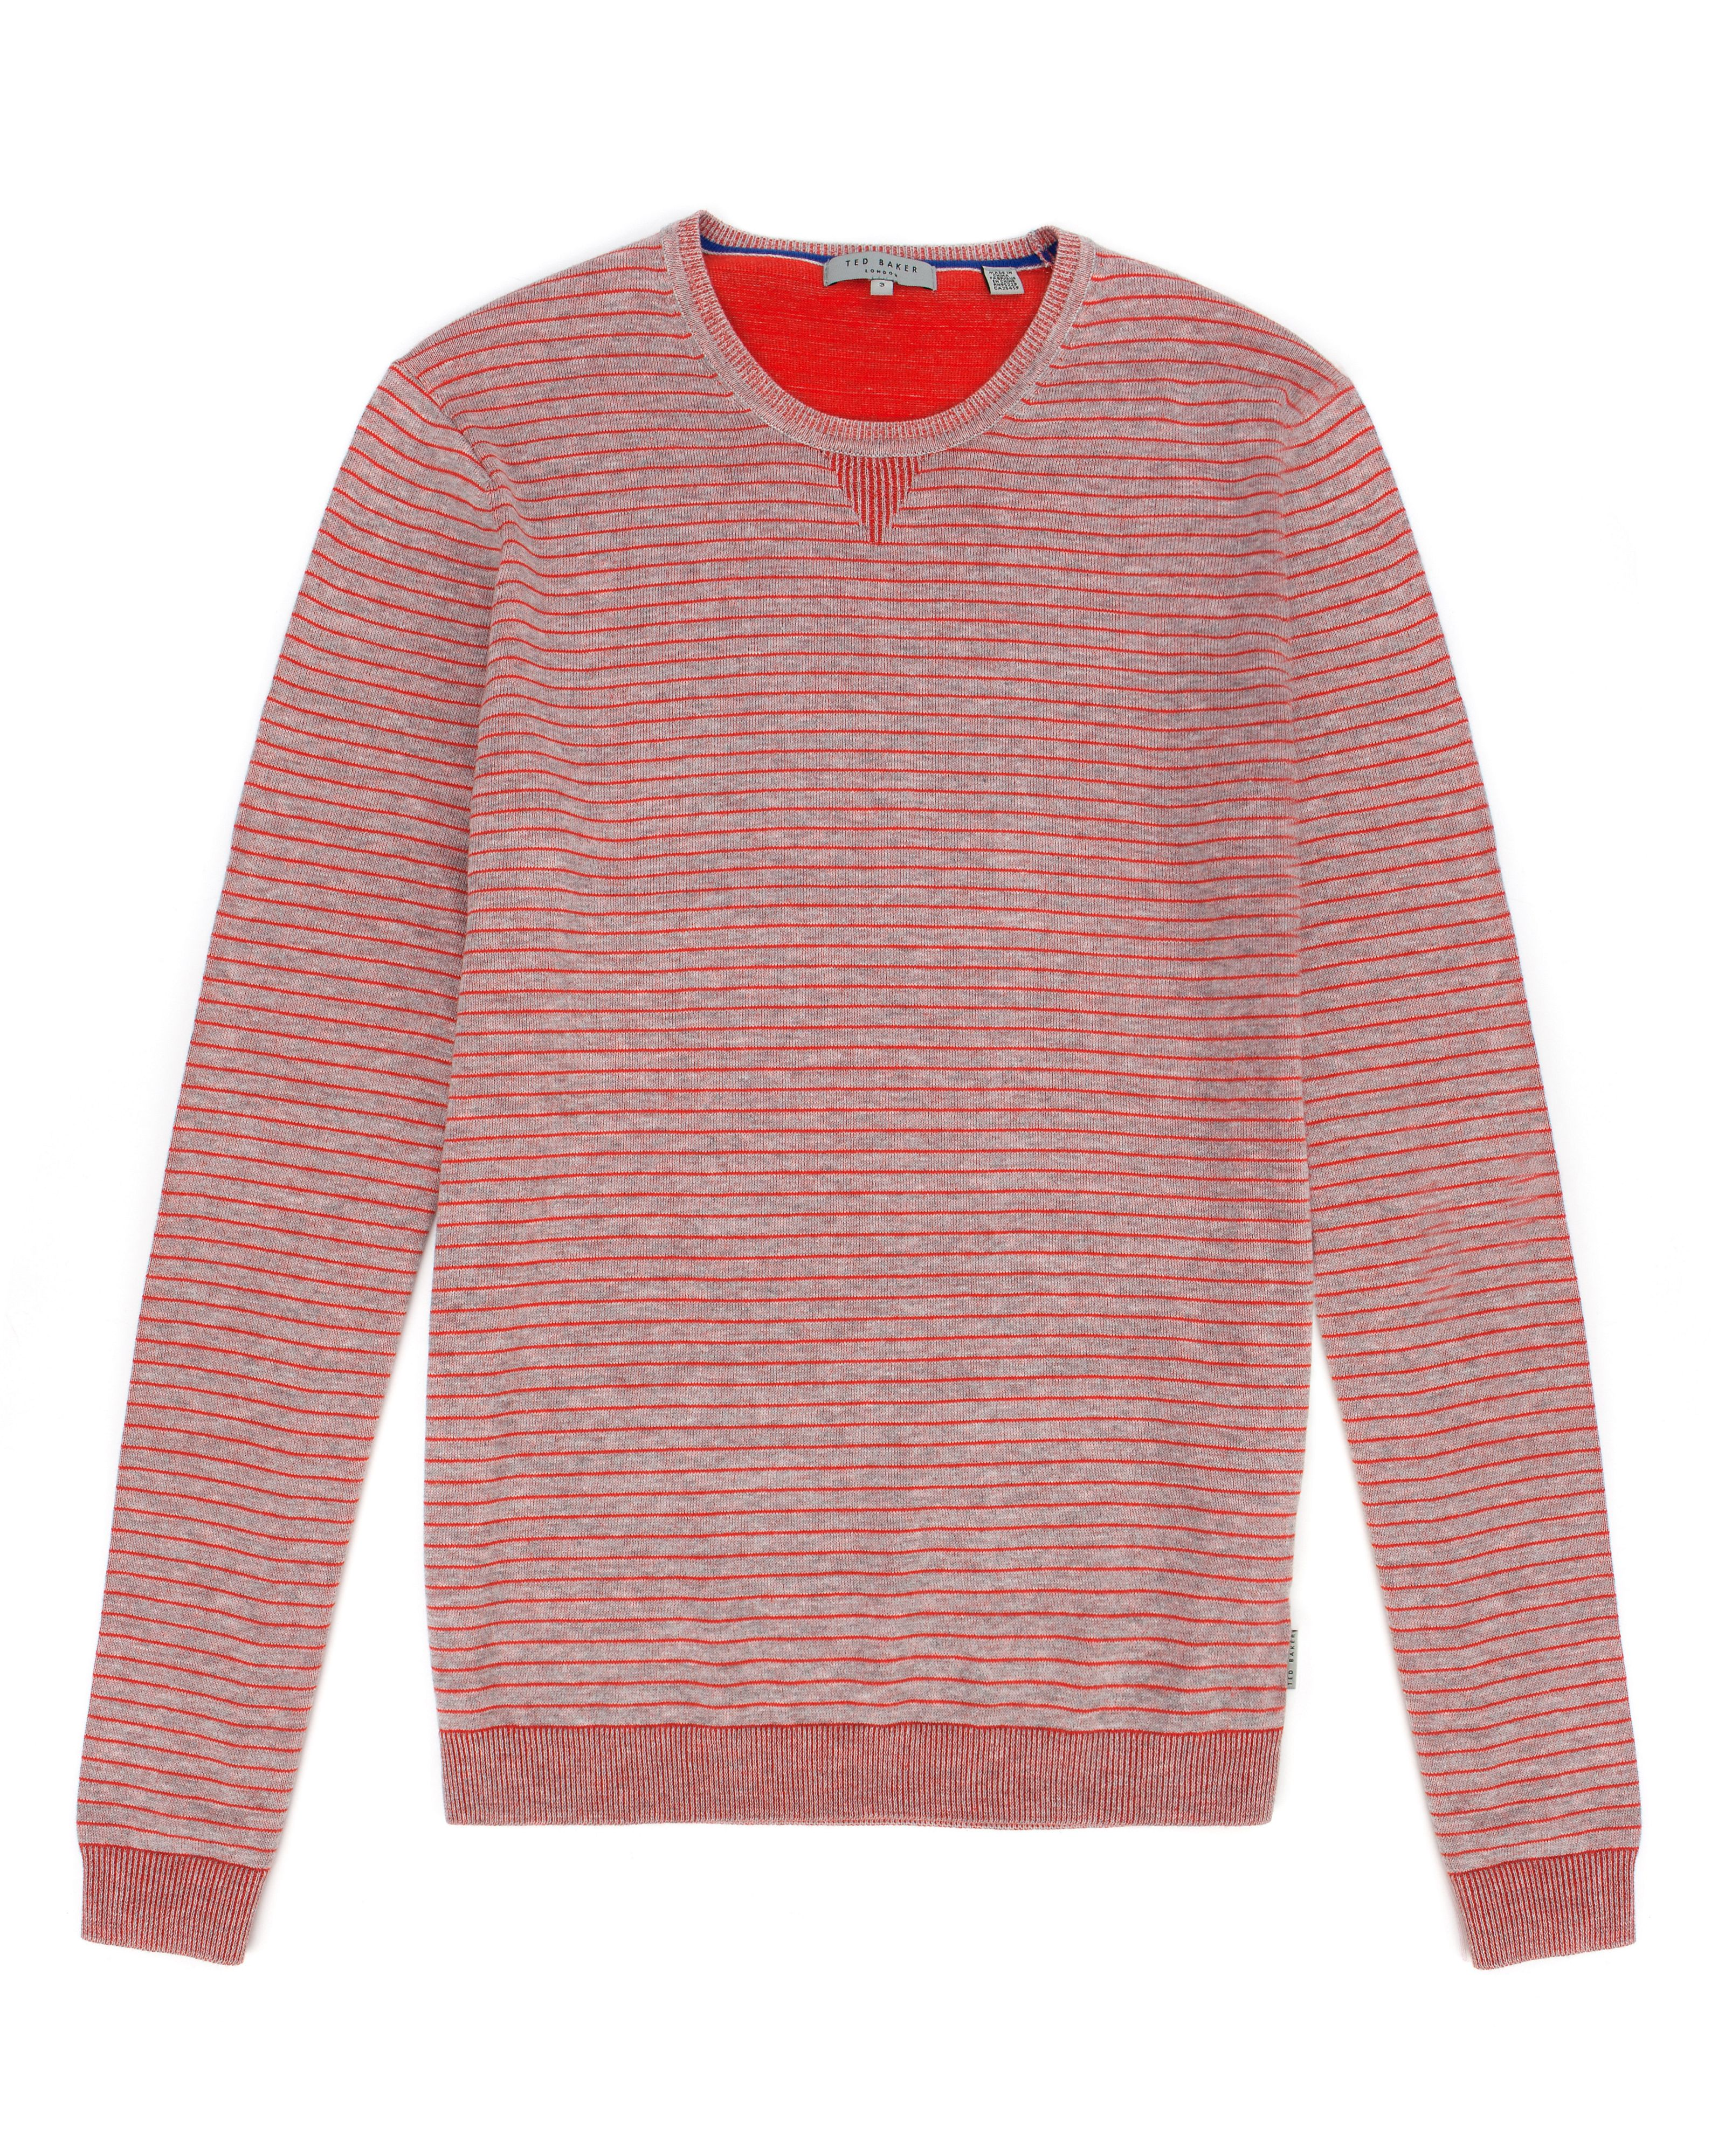 Tonebag stripe crew neck jumper